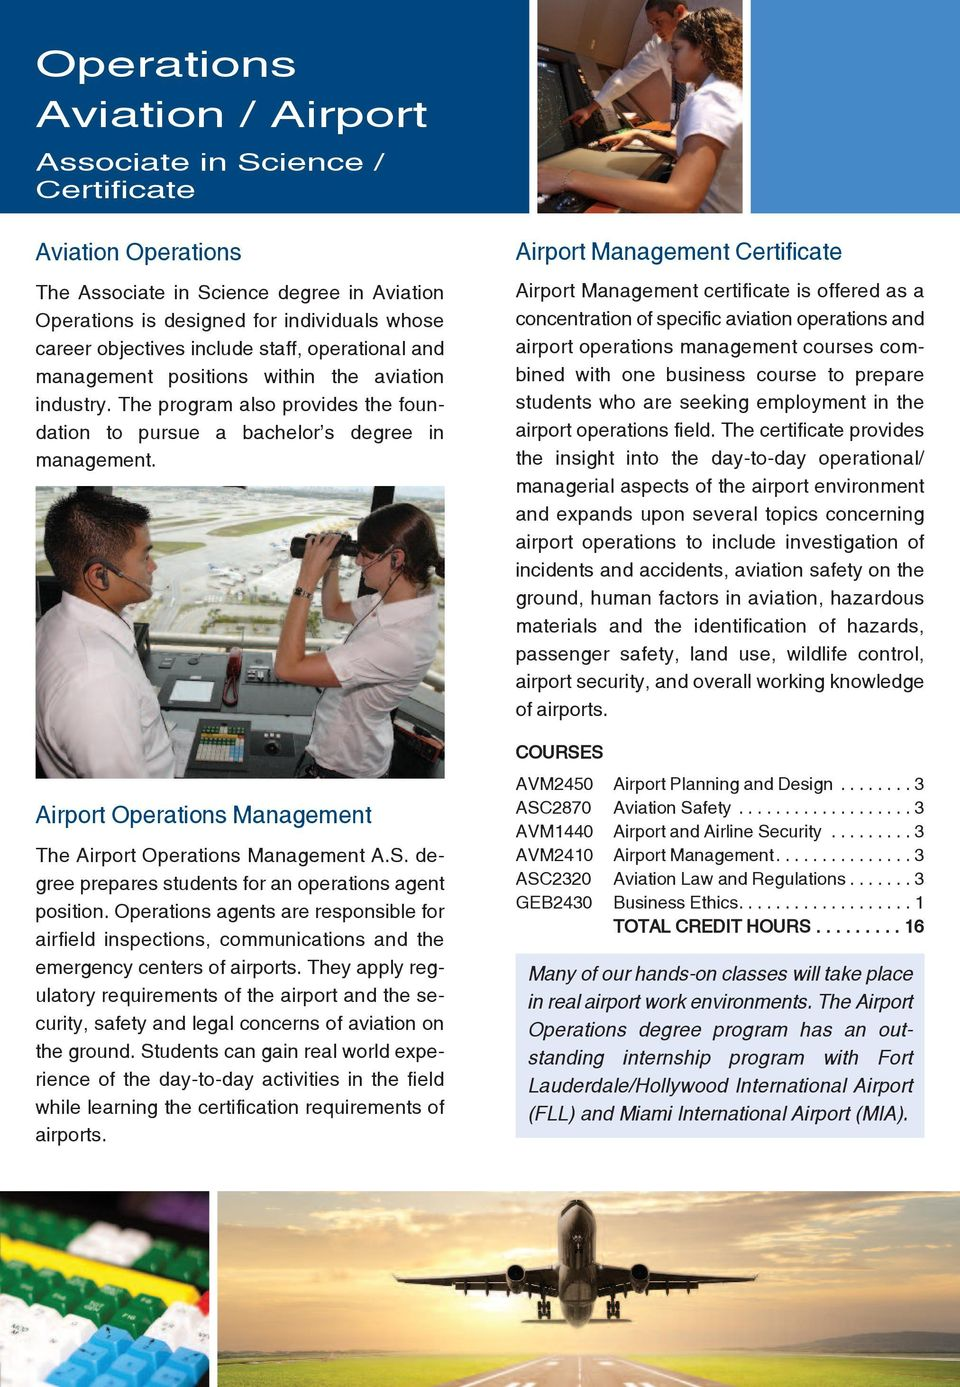 Airport operations management the Airport operations management A.S. degree prepares students for an operations agent position.